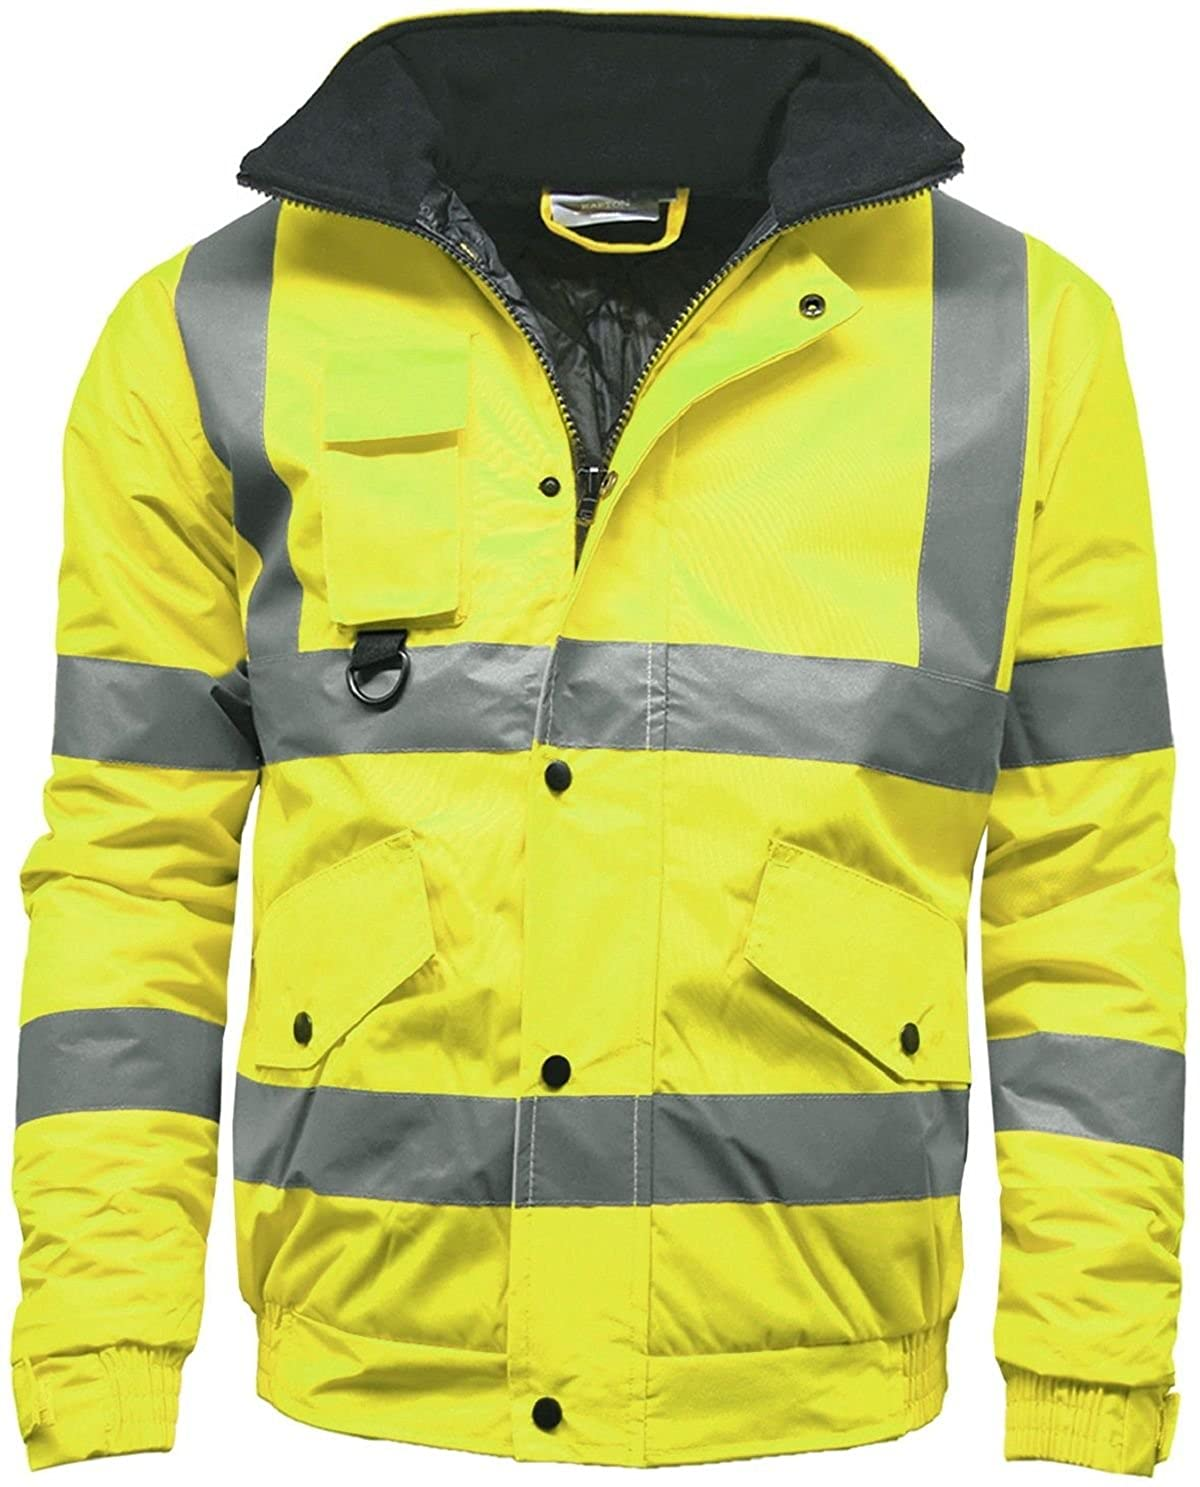 3c8432ef0eb Amazon.com  STS Mens Waterproof Two Tone Bomber Jacket Hi Vis Visibility  Work Wear Hi Vis Standard  Clothing